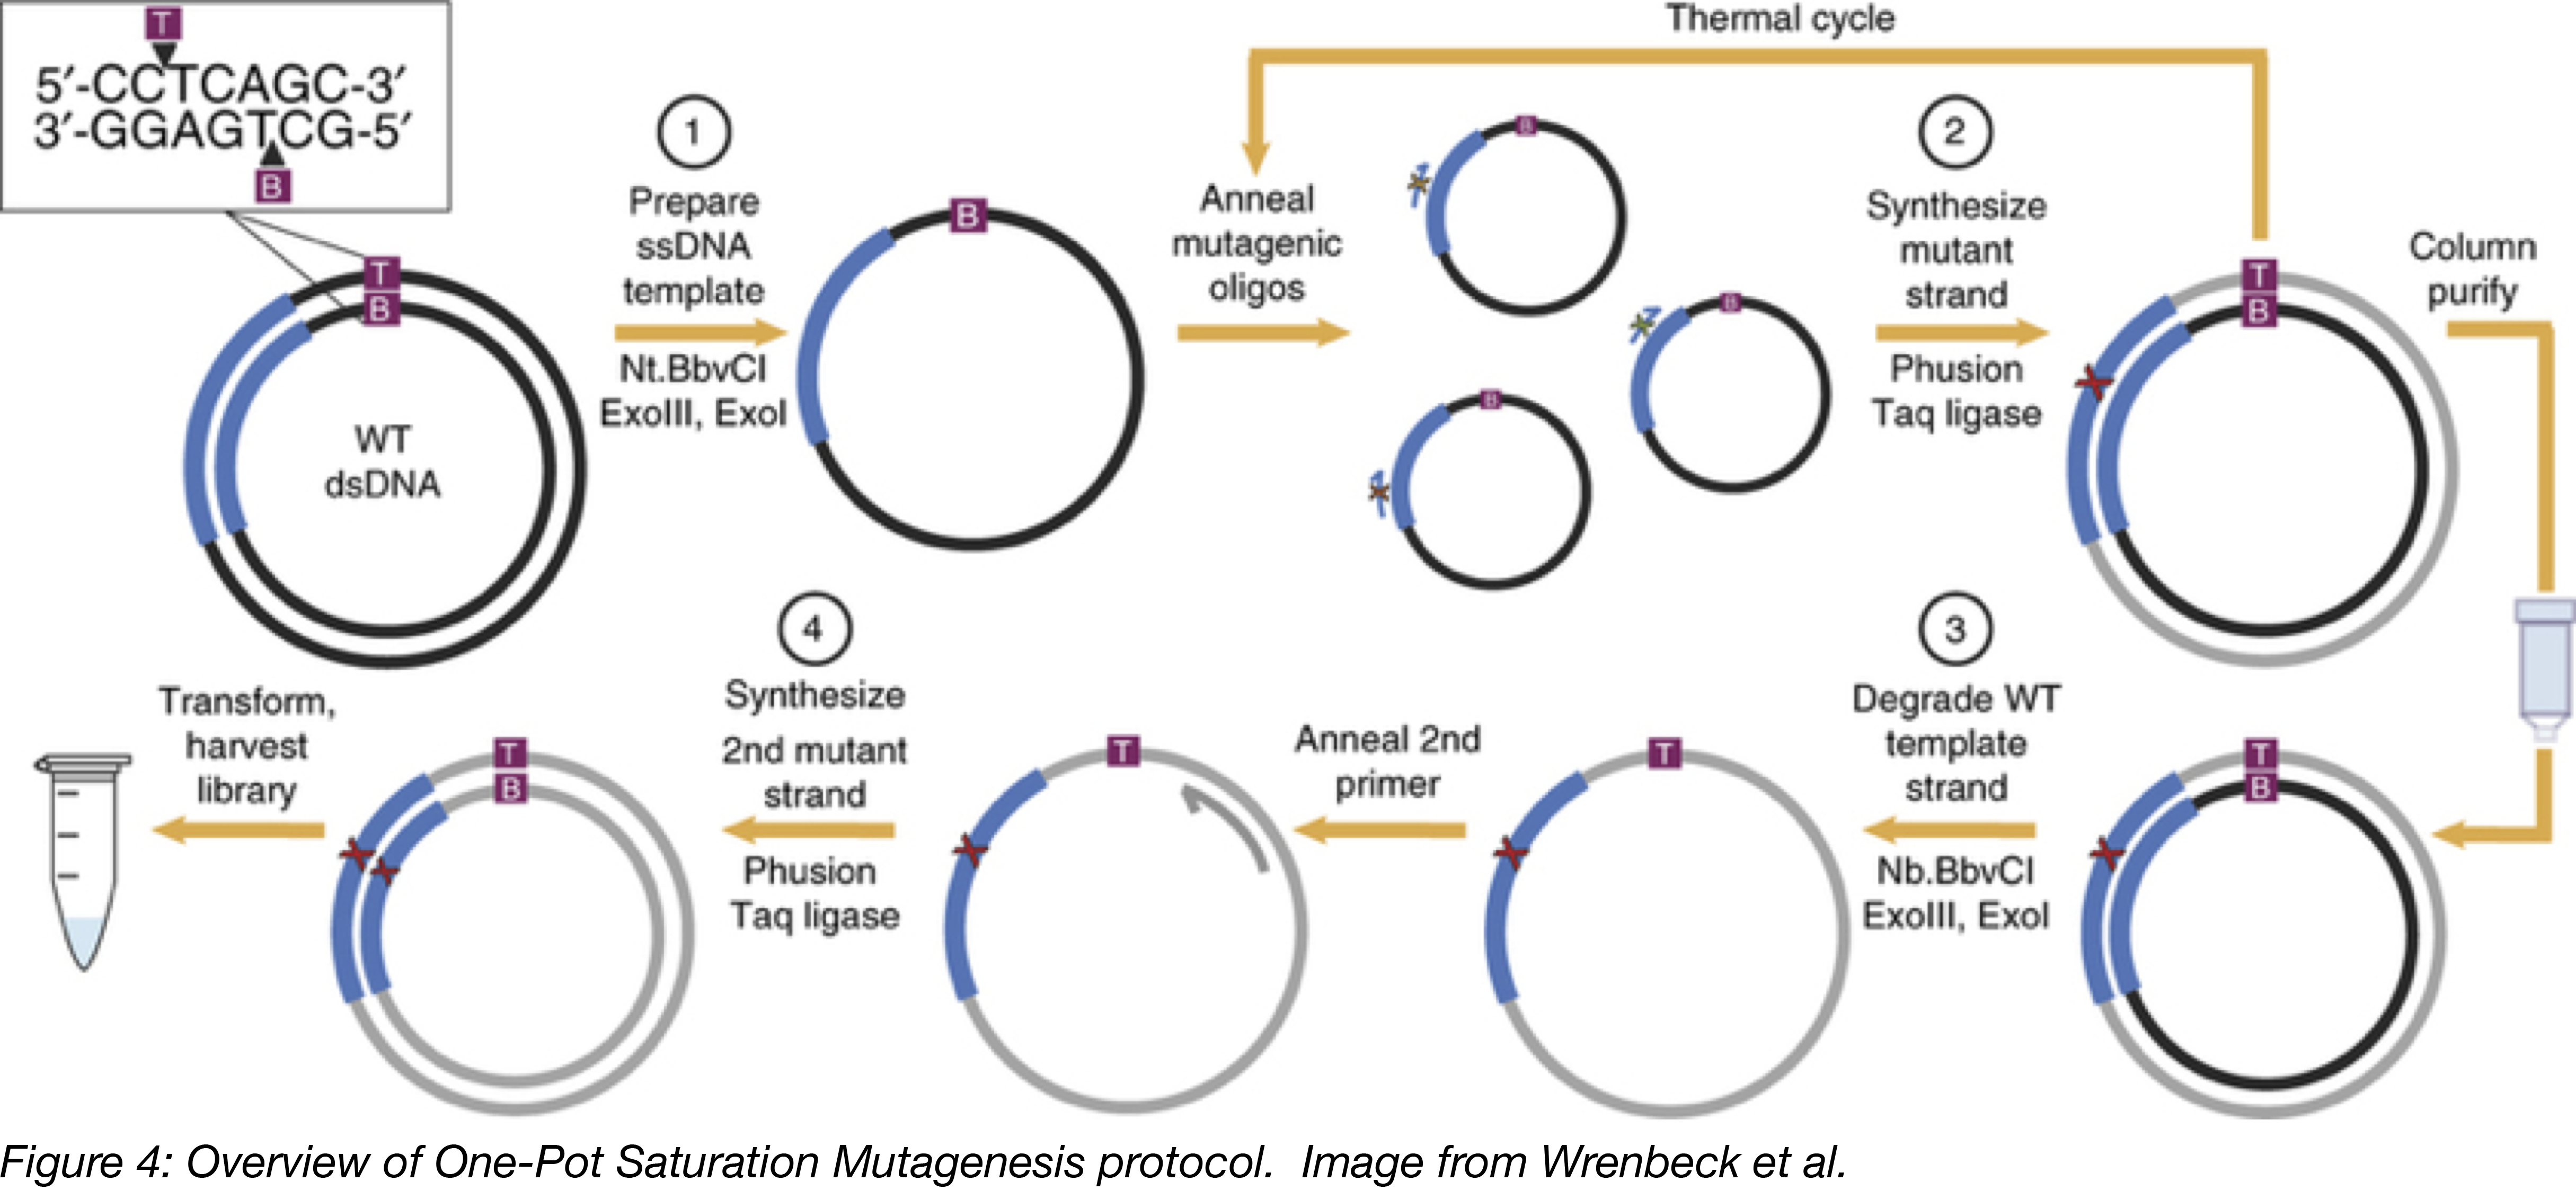 One Pot Saturation Mutagenesis Overview.png